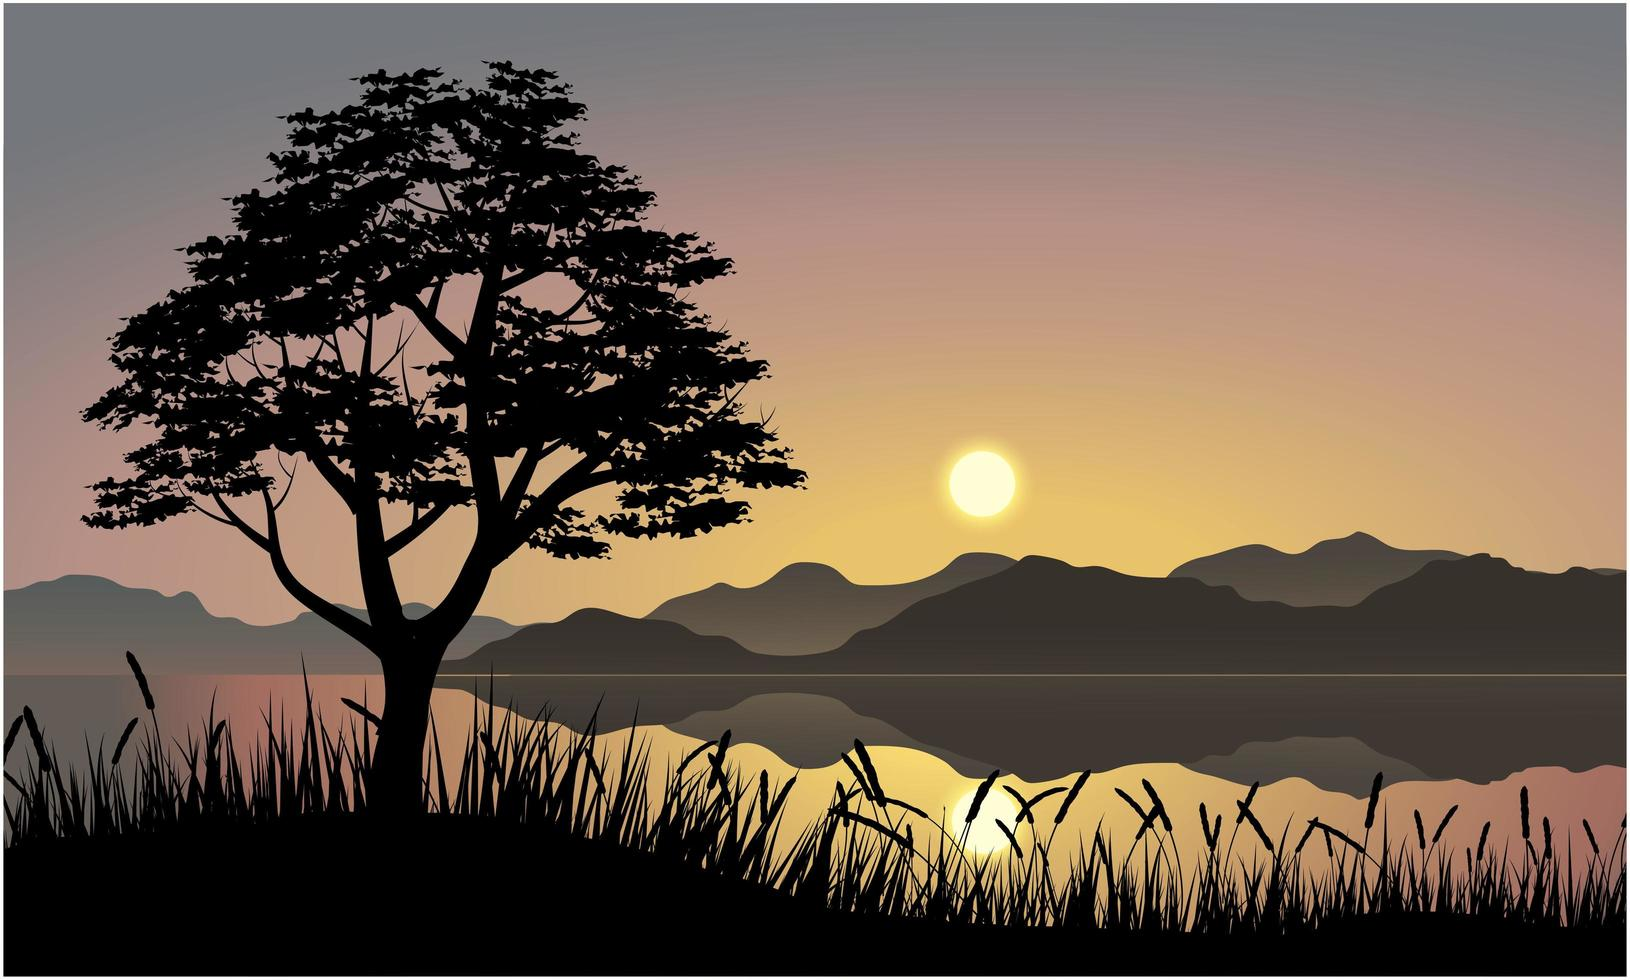 Sunset reflecting on water over mountains landscape vector